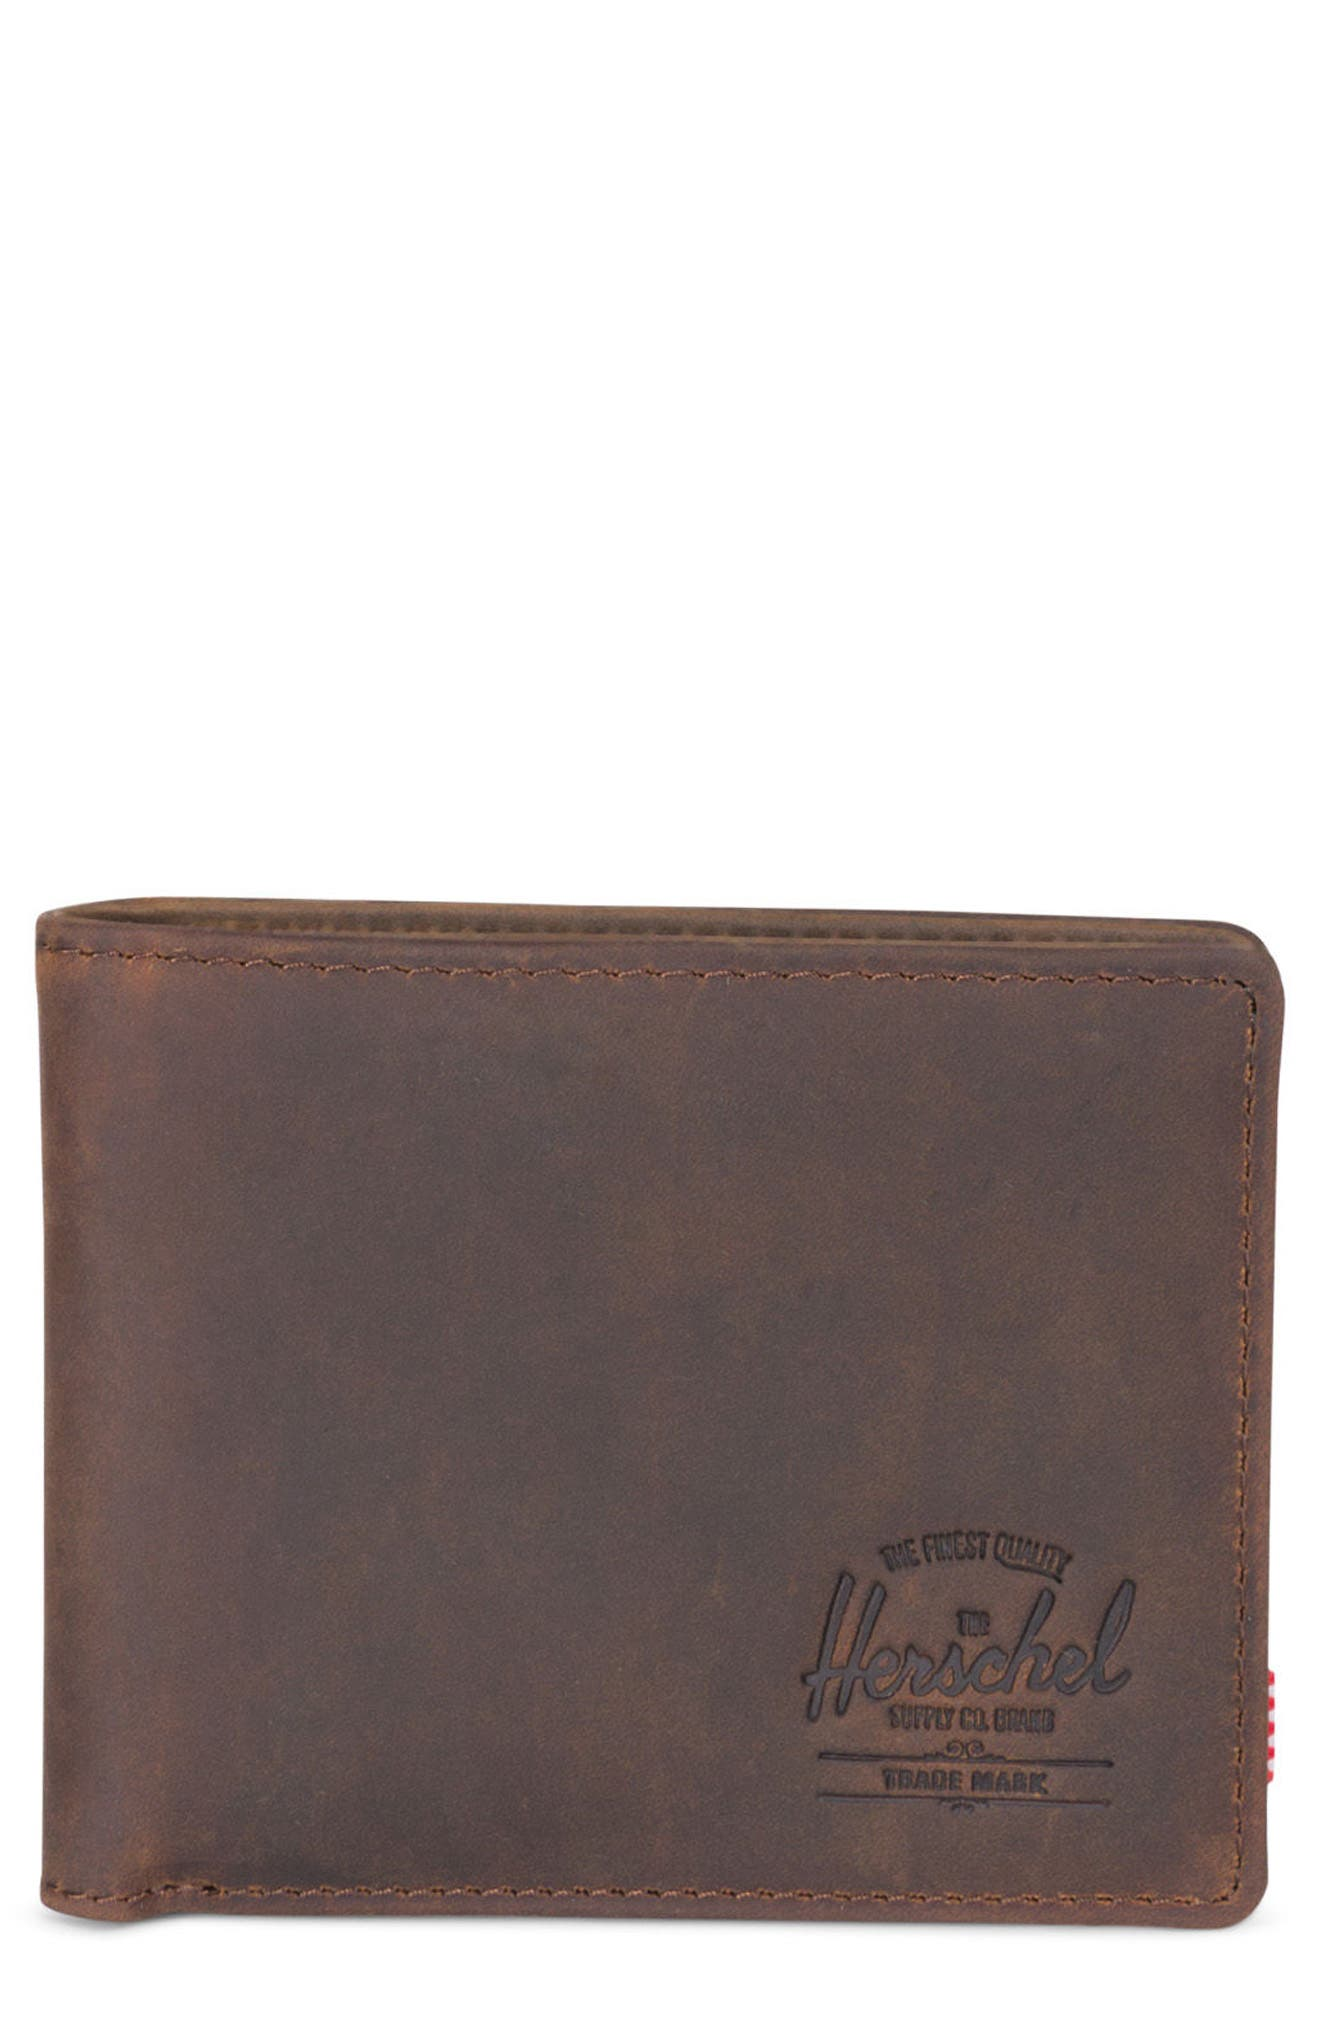 Hank Leather Wallet,                             Main thumbnail 1, color,                             Nubuck Leather